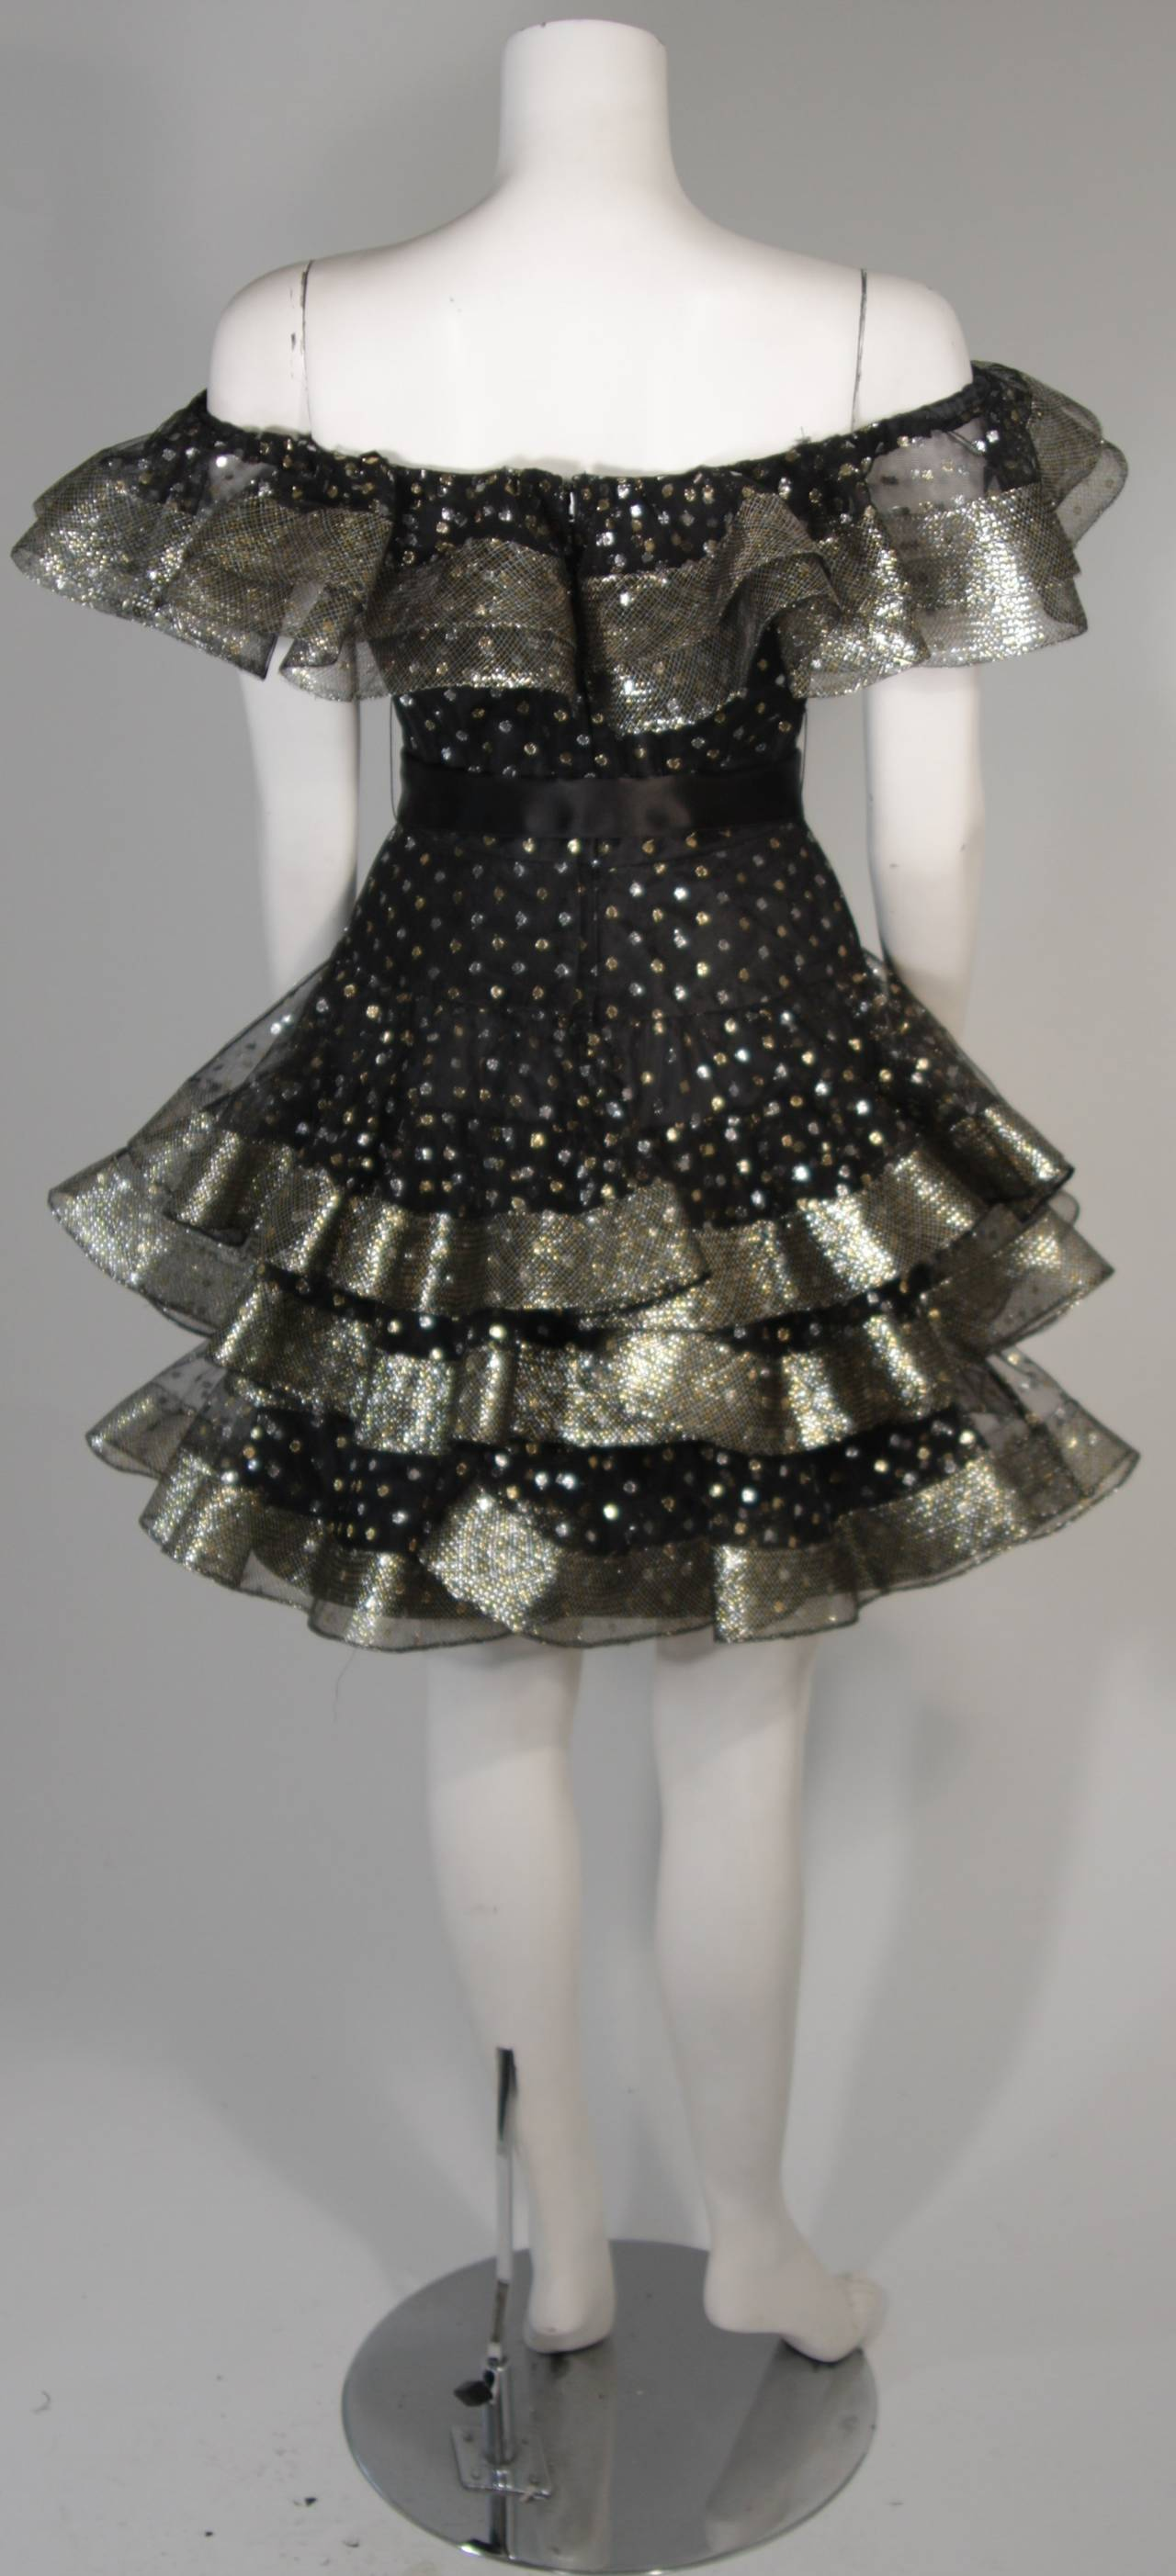 Victor Costa Black Ruffled Cocktail Dress with Silver and Gold Polka Dots Size 2 For Sale 4